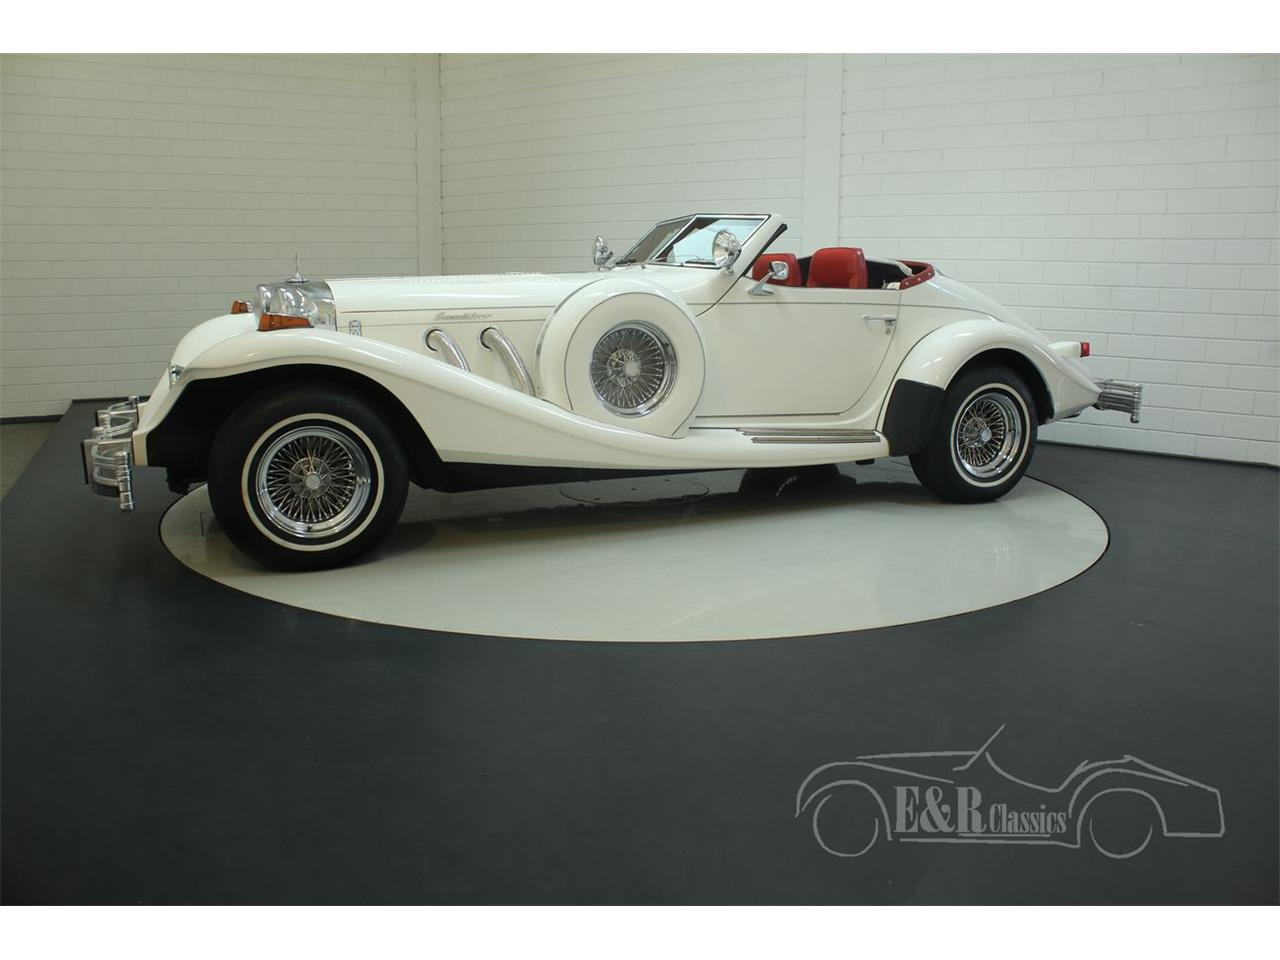 Large Picture of '82 Excalibur Series IV Phaeton - $78,450.00 - Q3GF